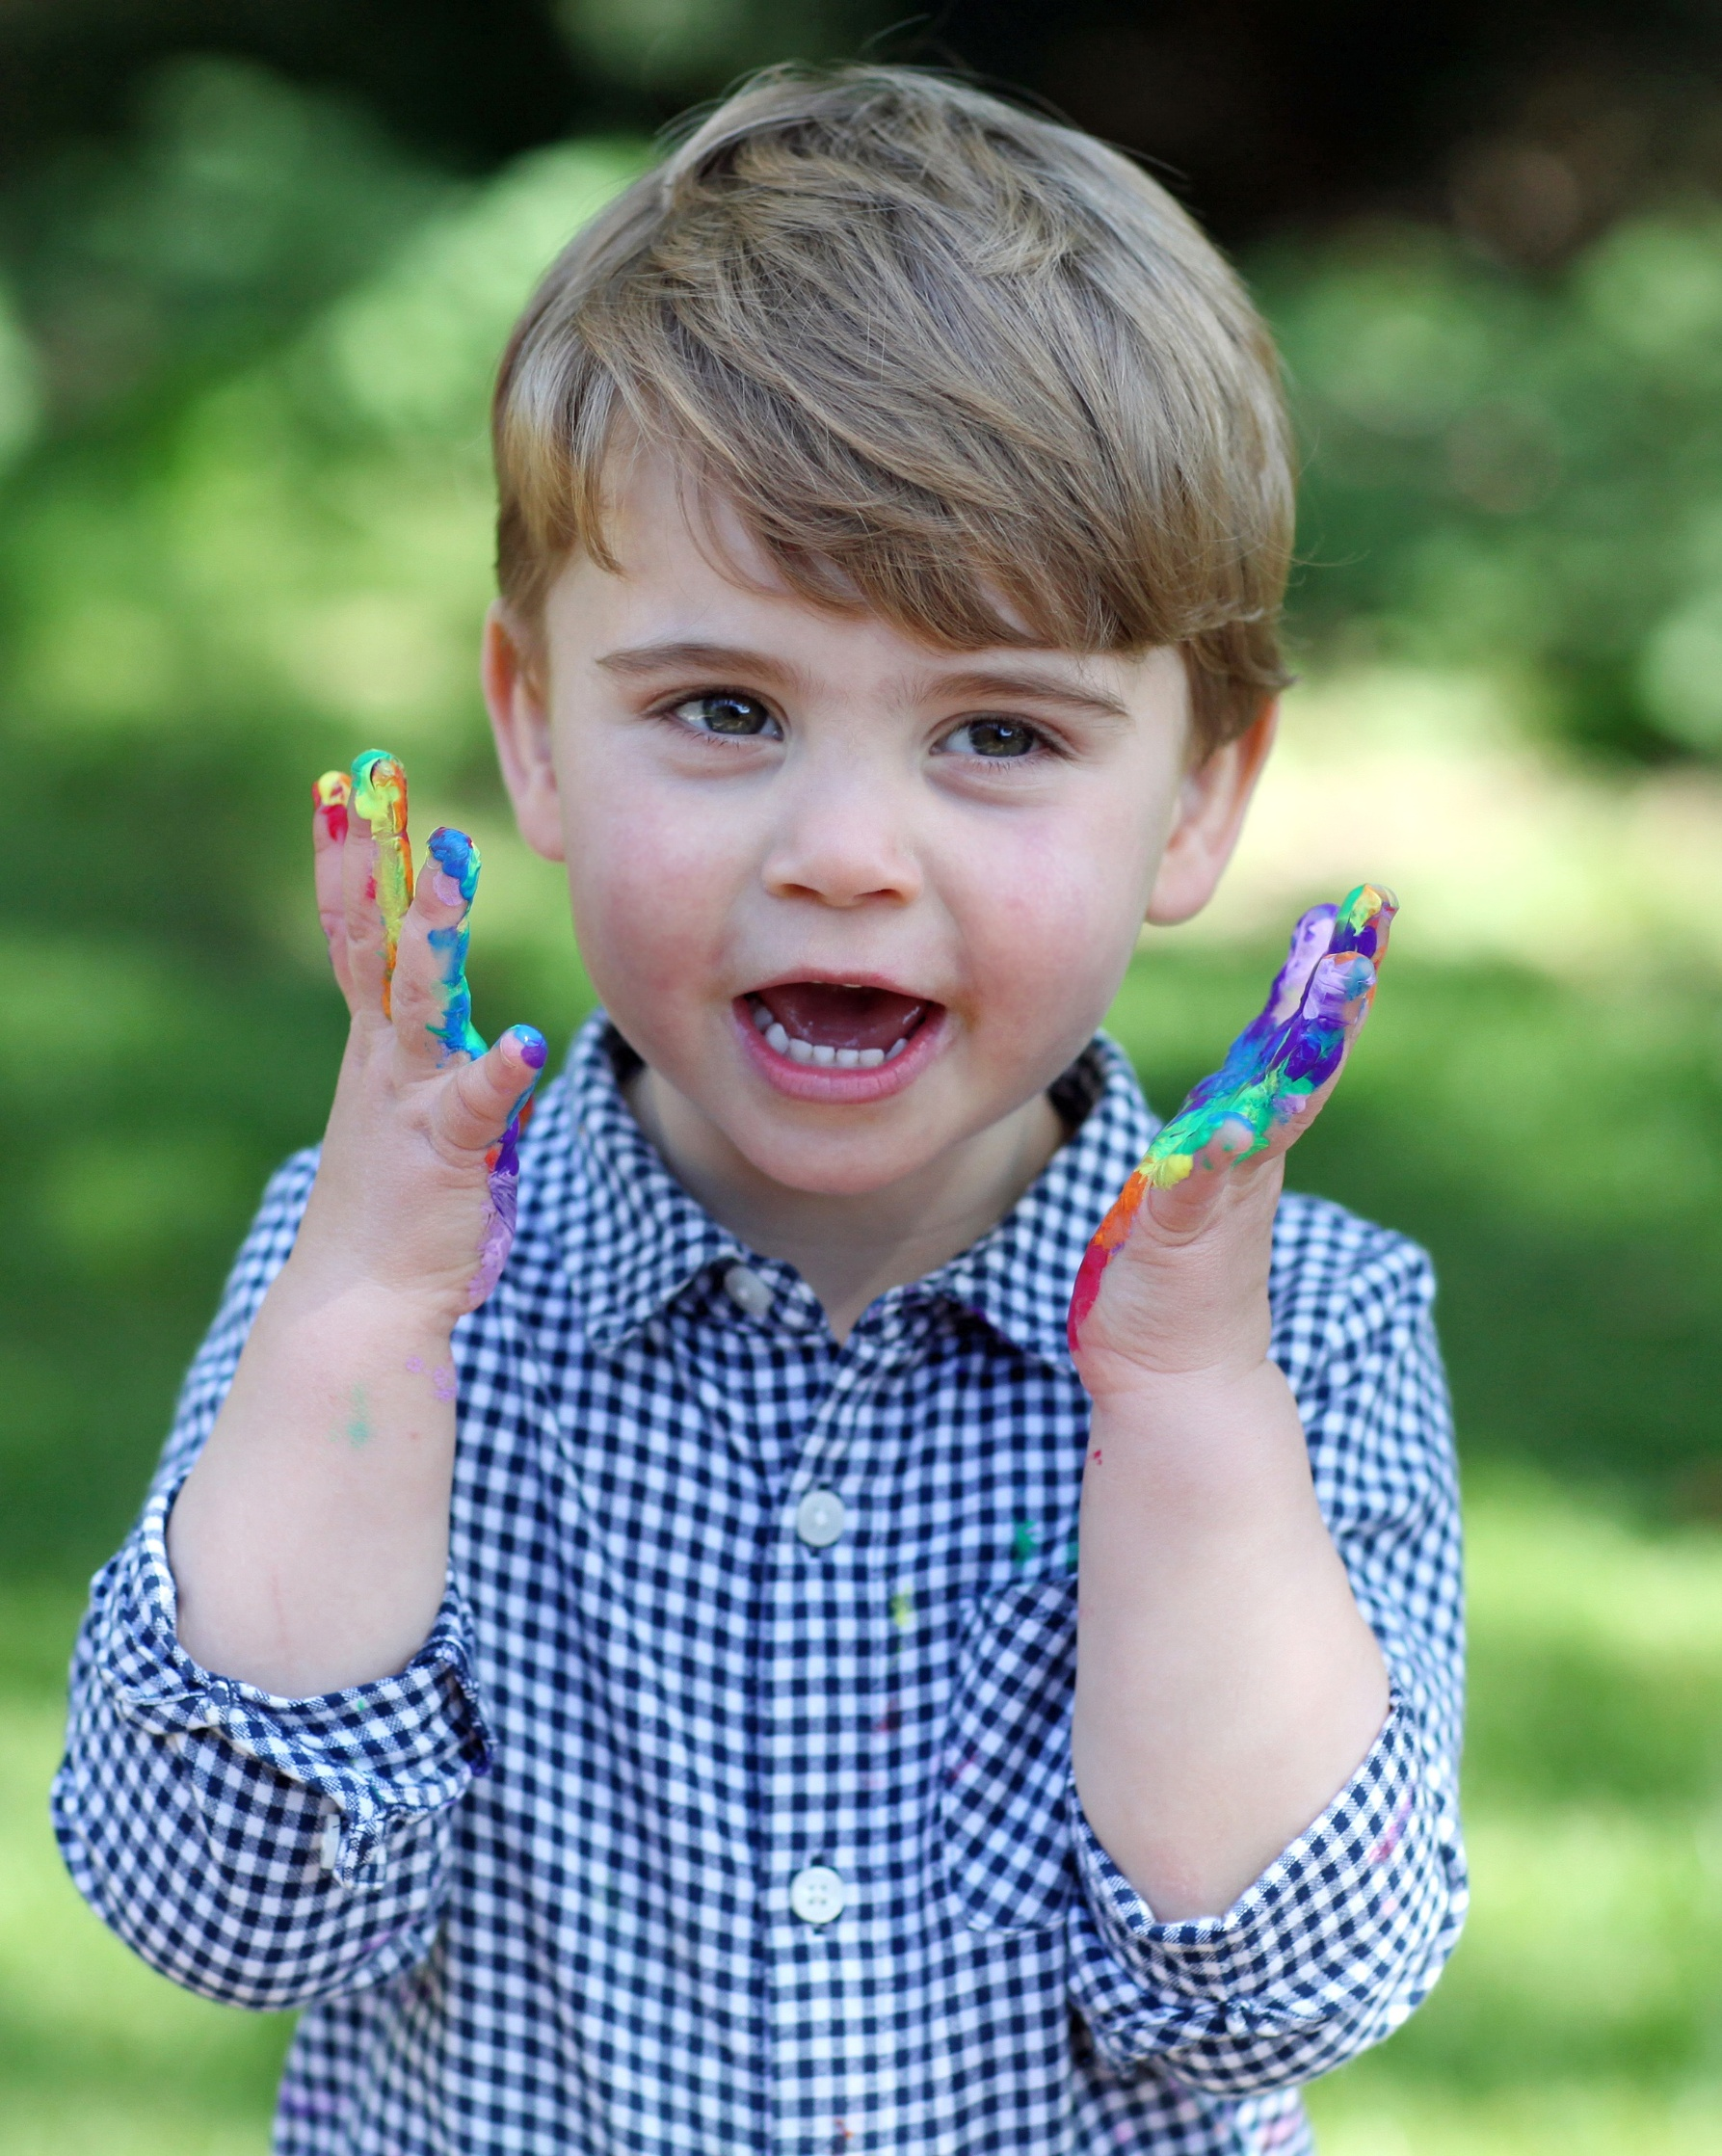 Prince Louis celebrates his second birthday at Anmer Hall, Norfolk, UK, on the 23rd April 2020. 23 Apr 2020, Image: 514657283, License: Rights-managed, Restrictions: NO United Kingdom, Model Release: no, Credit line: James Whatling / The Mega Agency / Profimedia